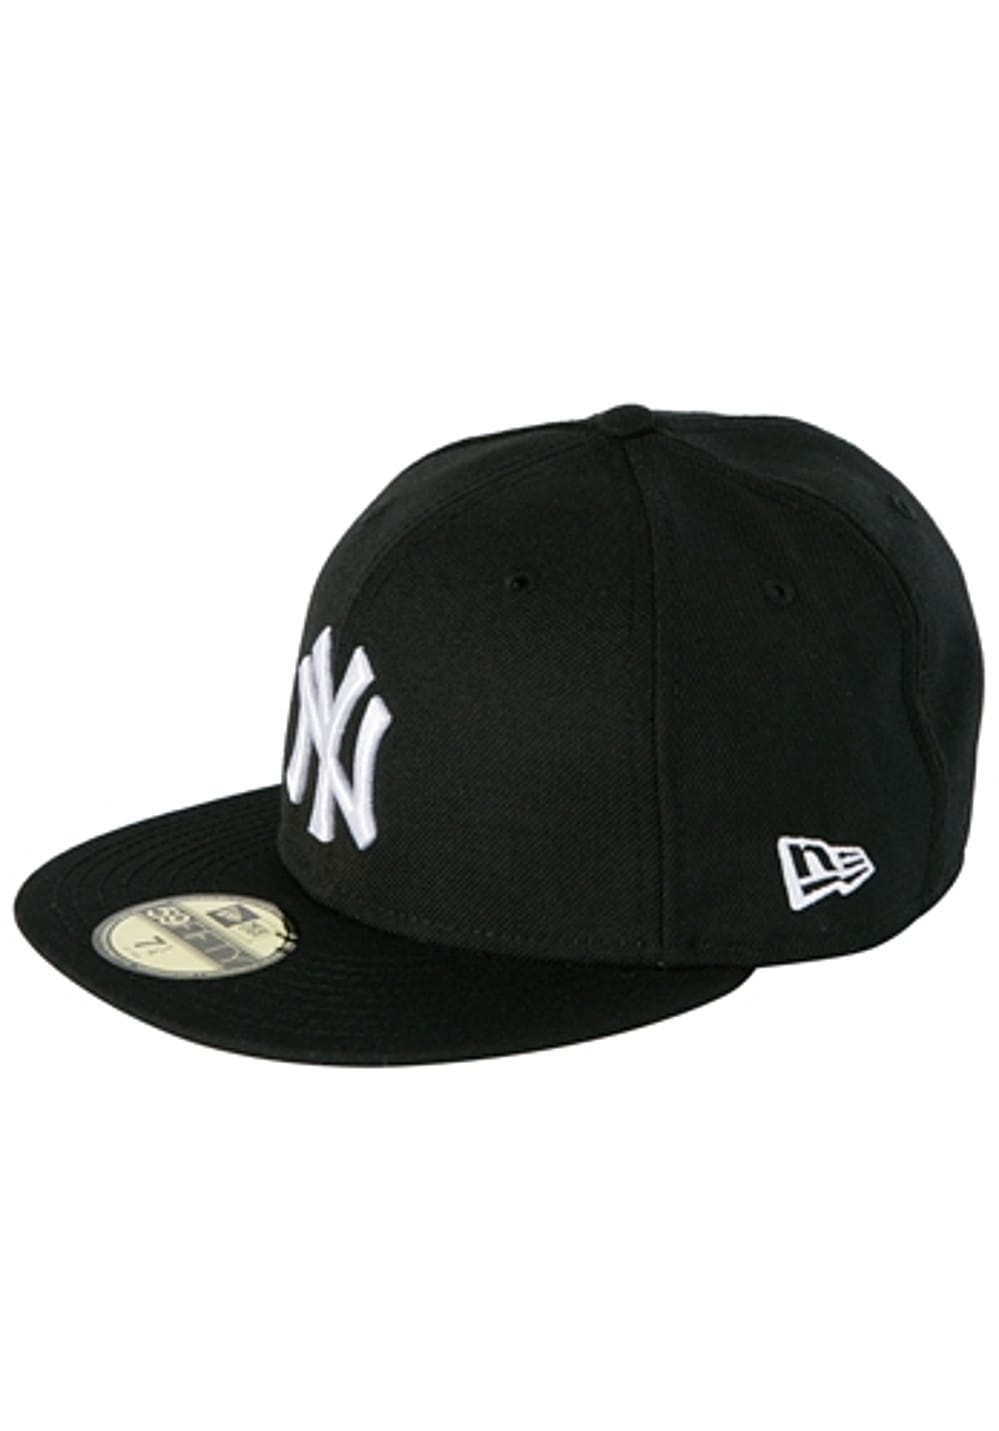 NEW Era 59Fifty New York Yankees Fitted Cap - Schwarz | Accessoires > Caps > Fitted Caps | new era